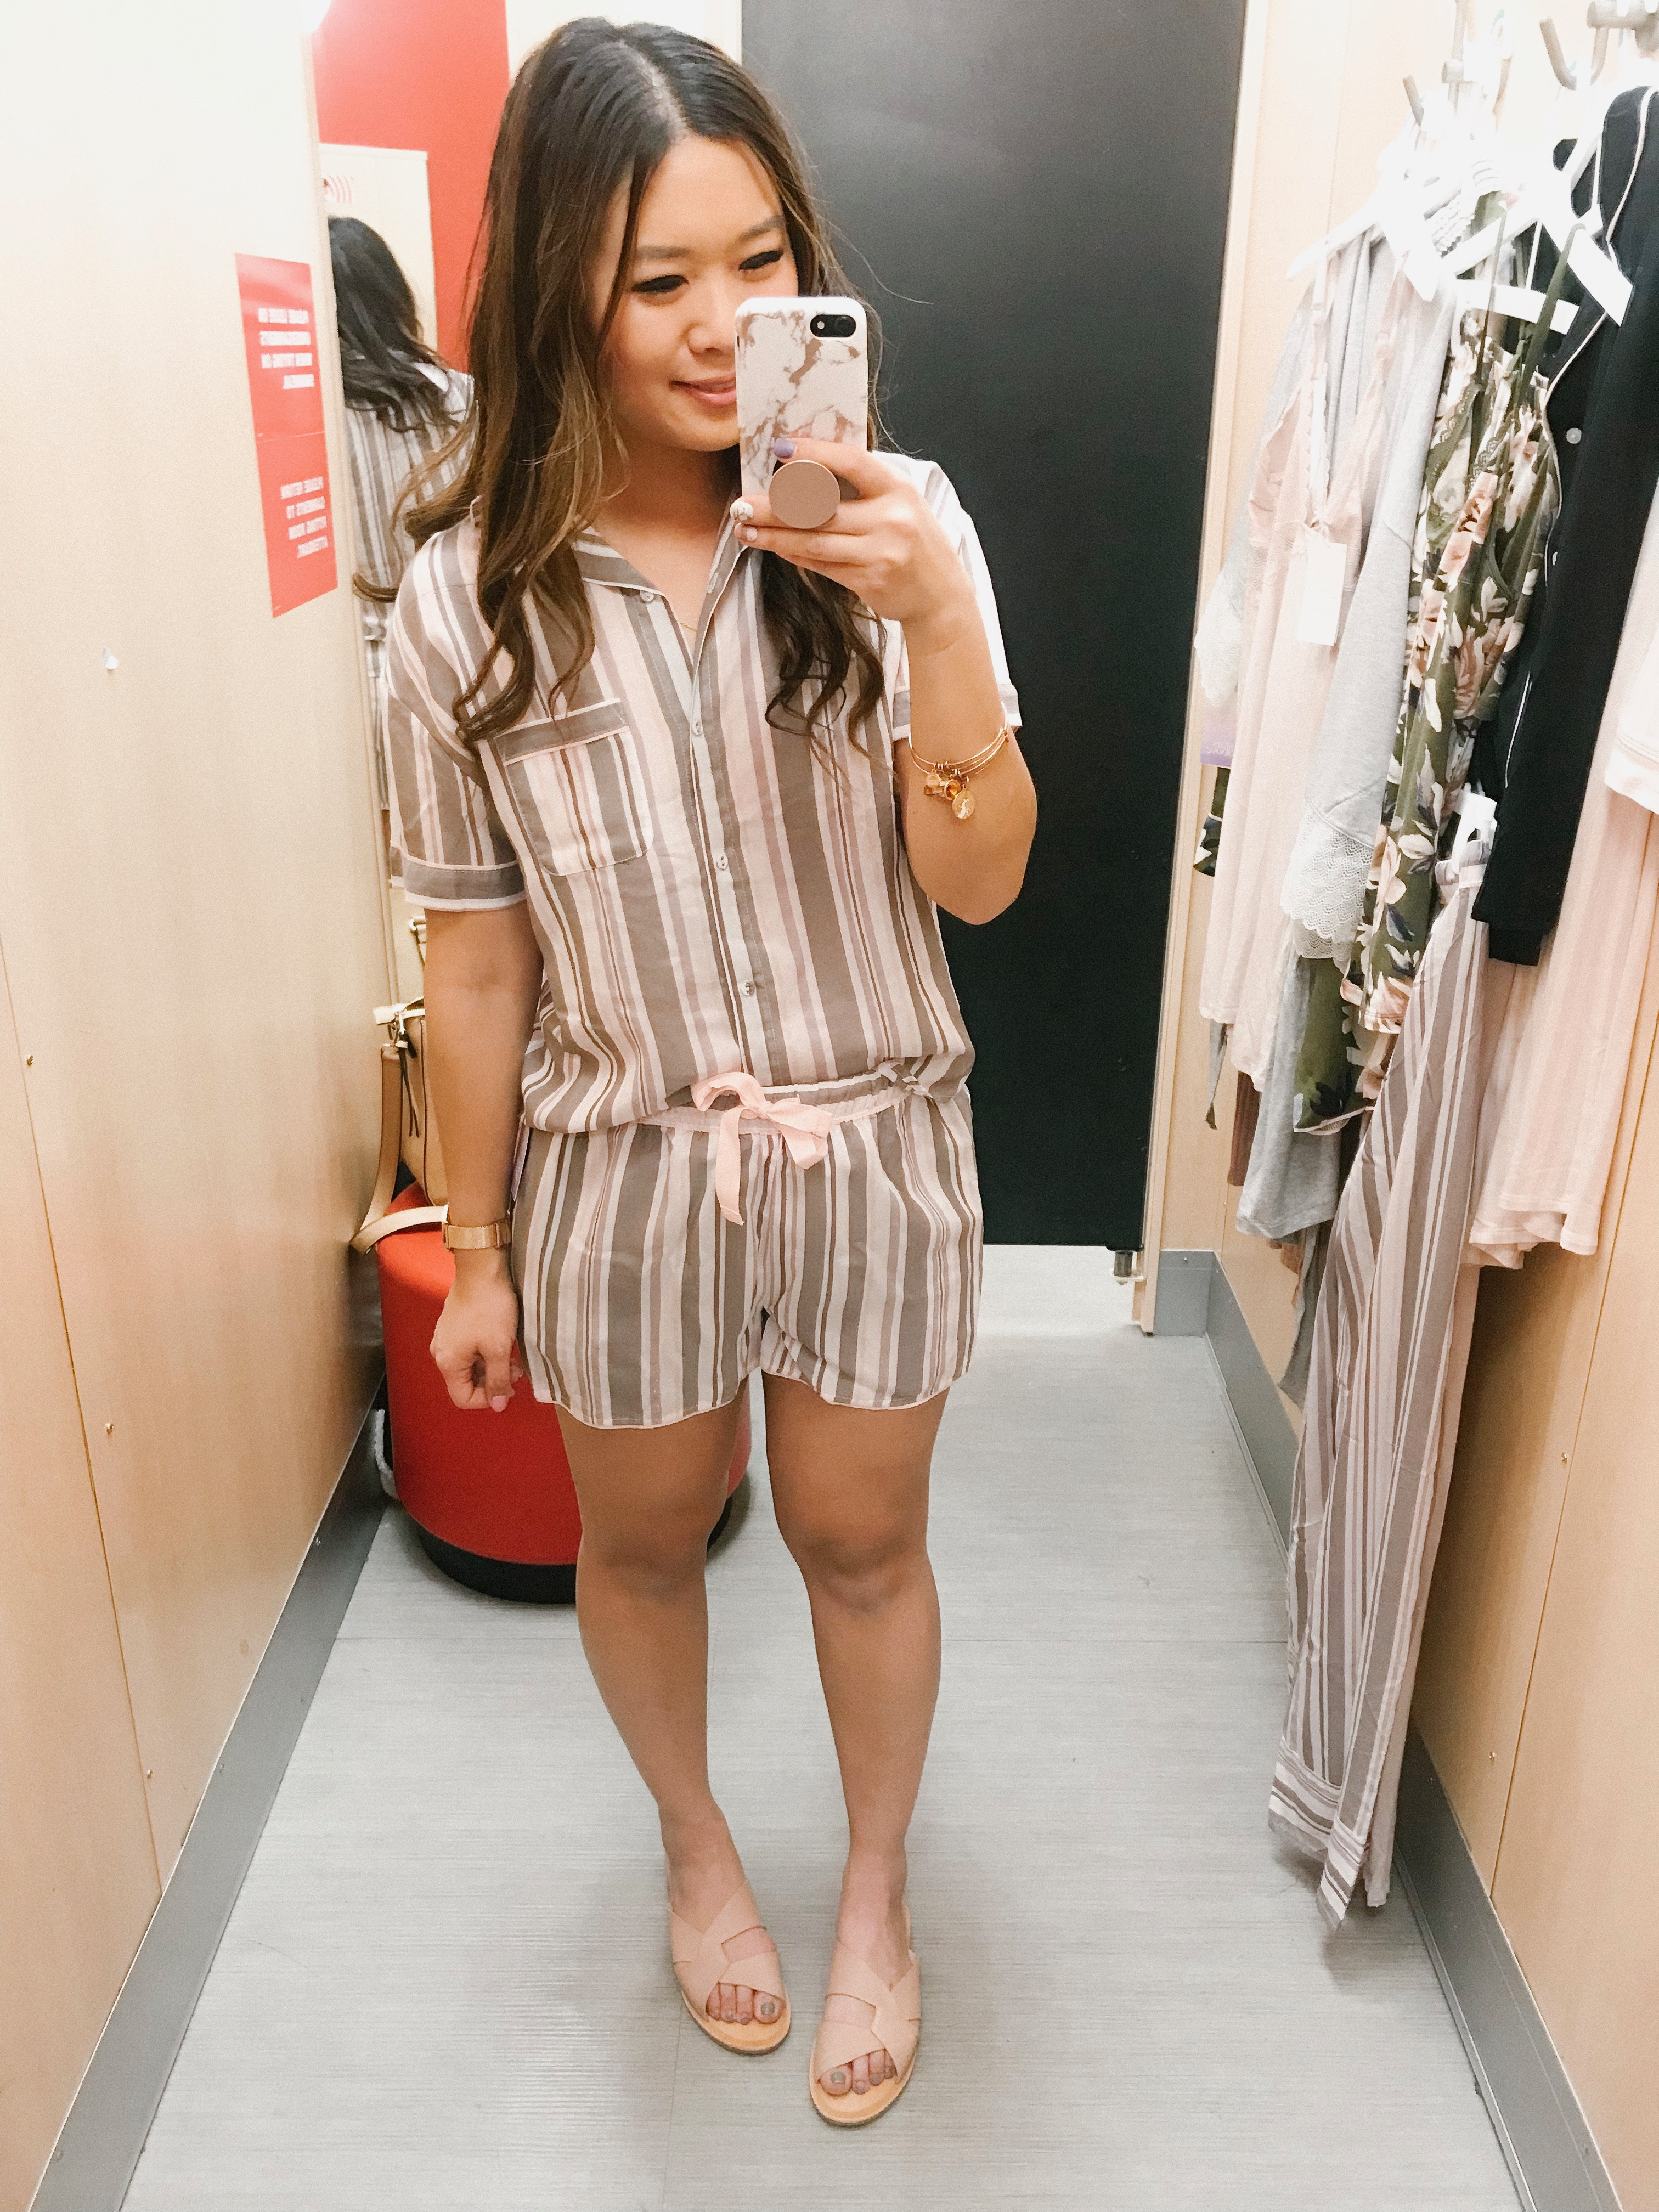 Review Of Target s New Loungewear and Sleepwear Brand - Stars Above 827f1d651